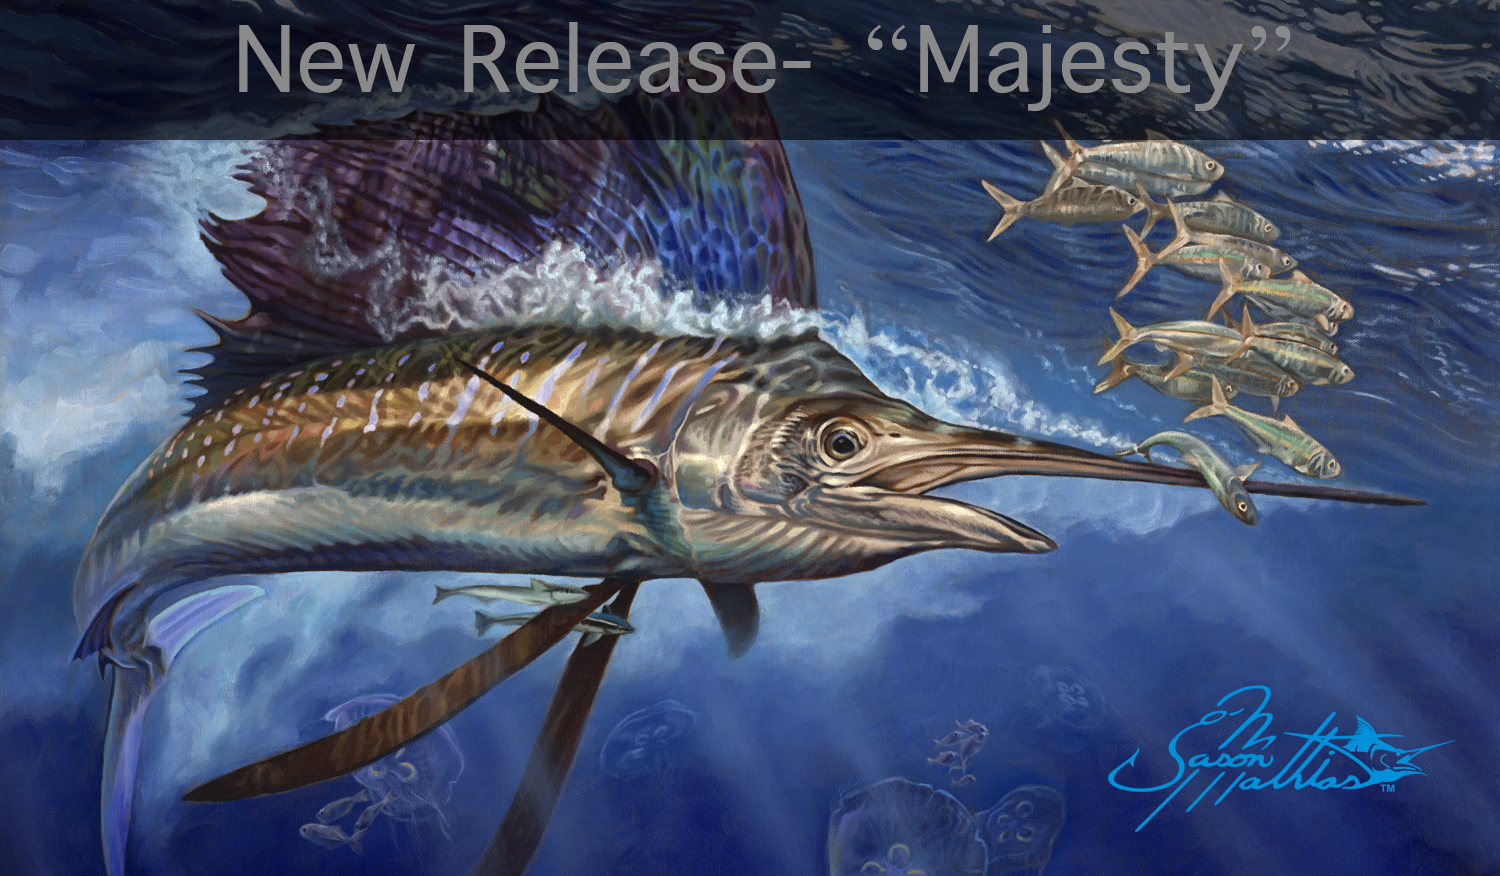 underwater, Sailfish, art, painting, prints, gamefish art, sportfish art, jason mathias, majesty, pelagic, billfish, baitball